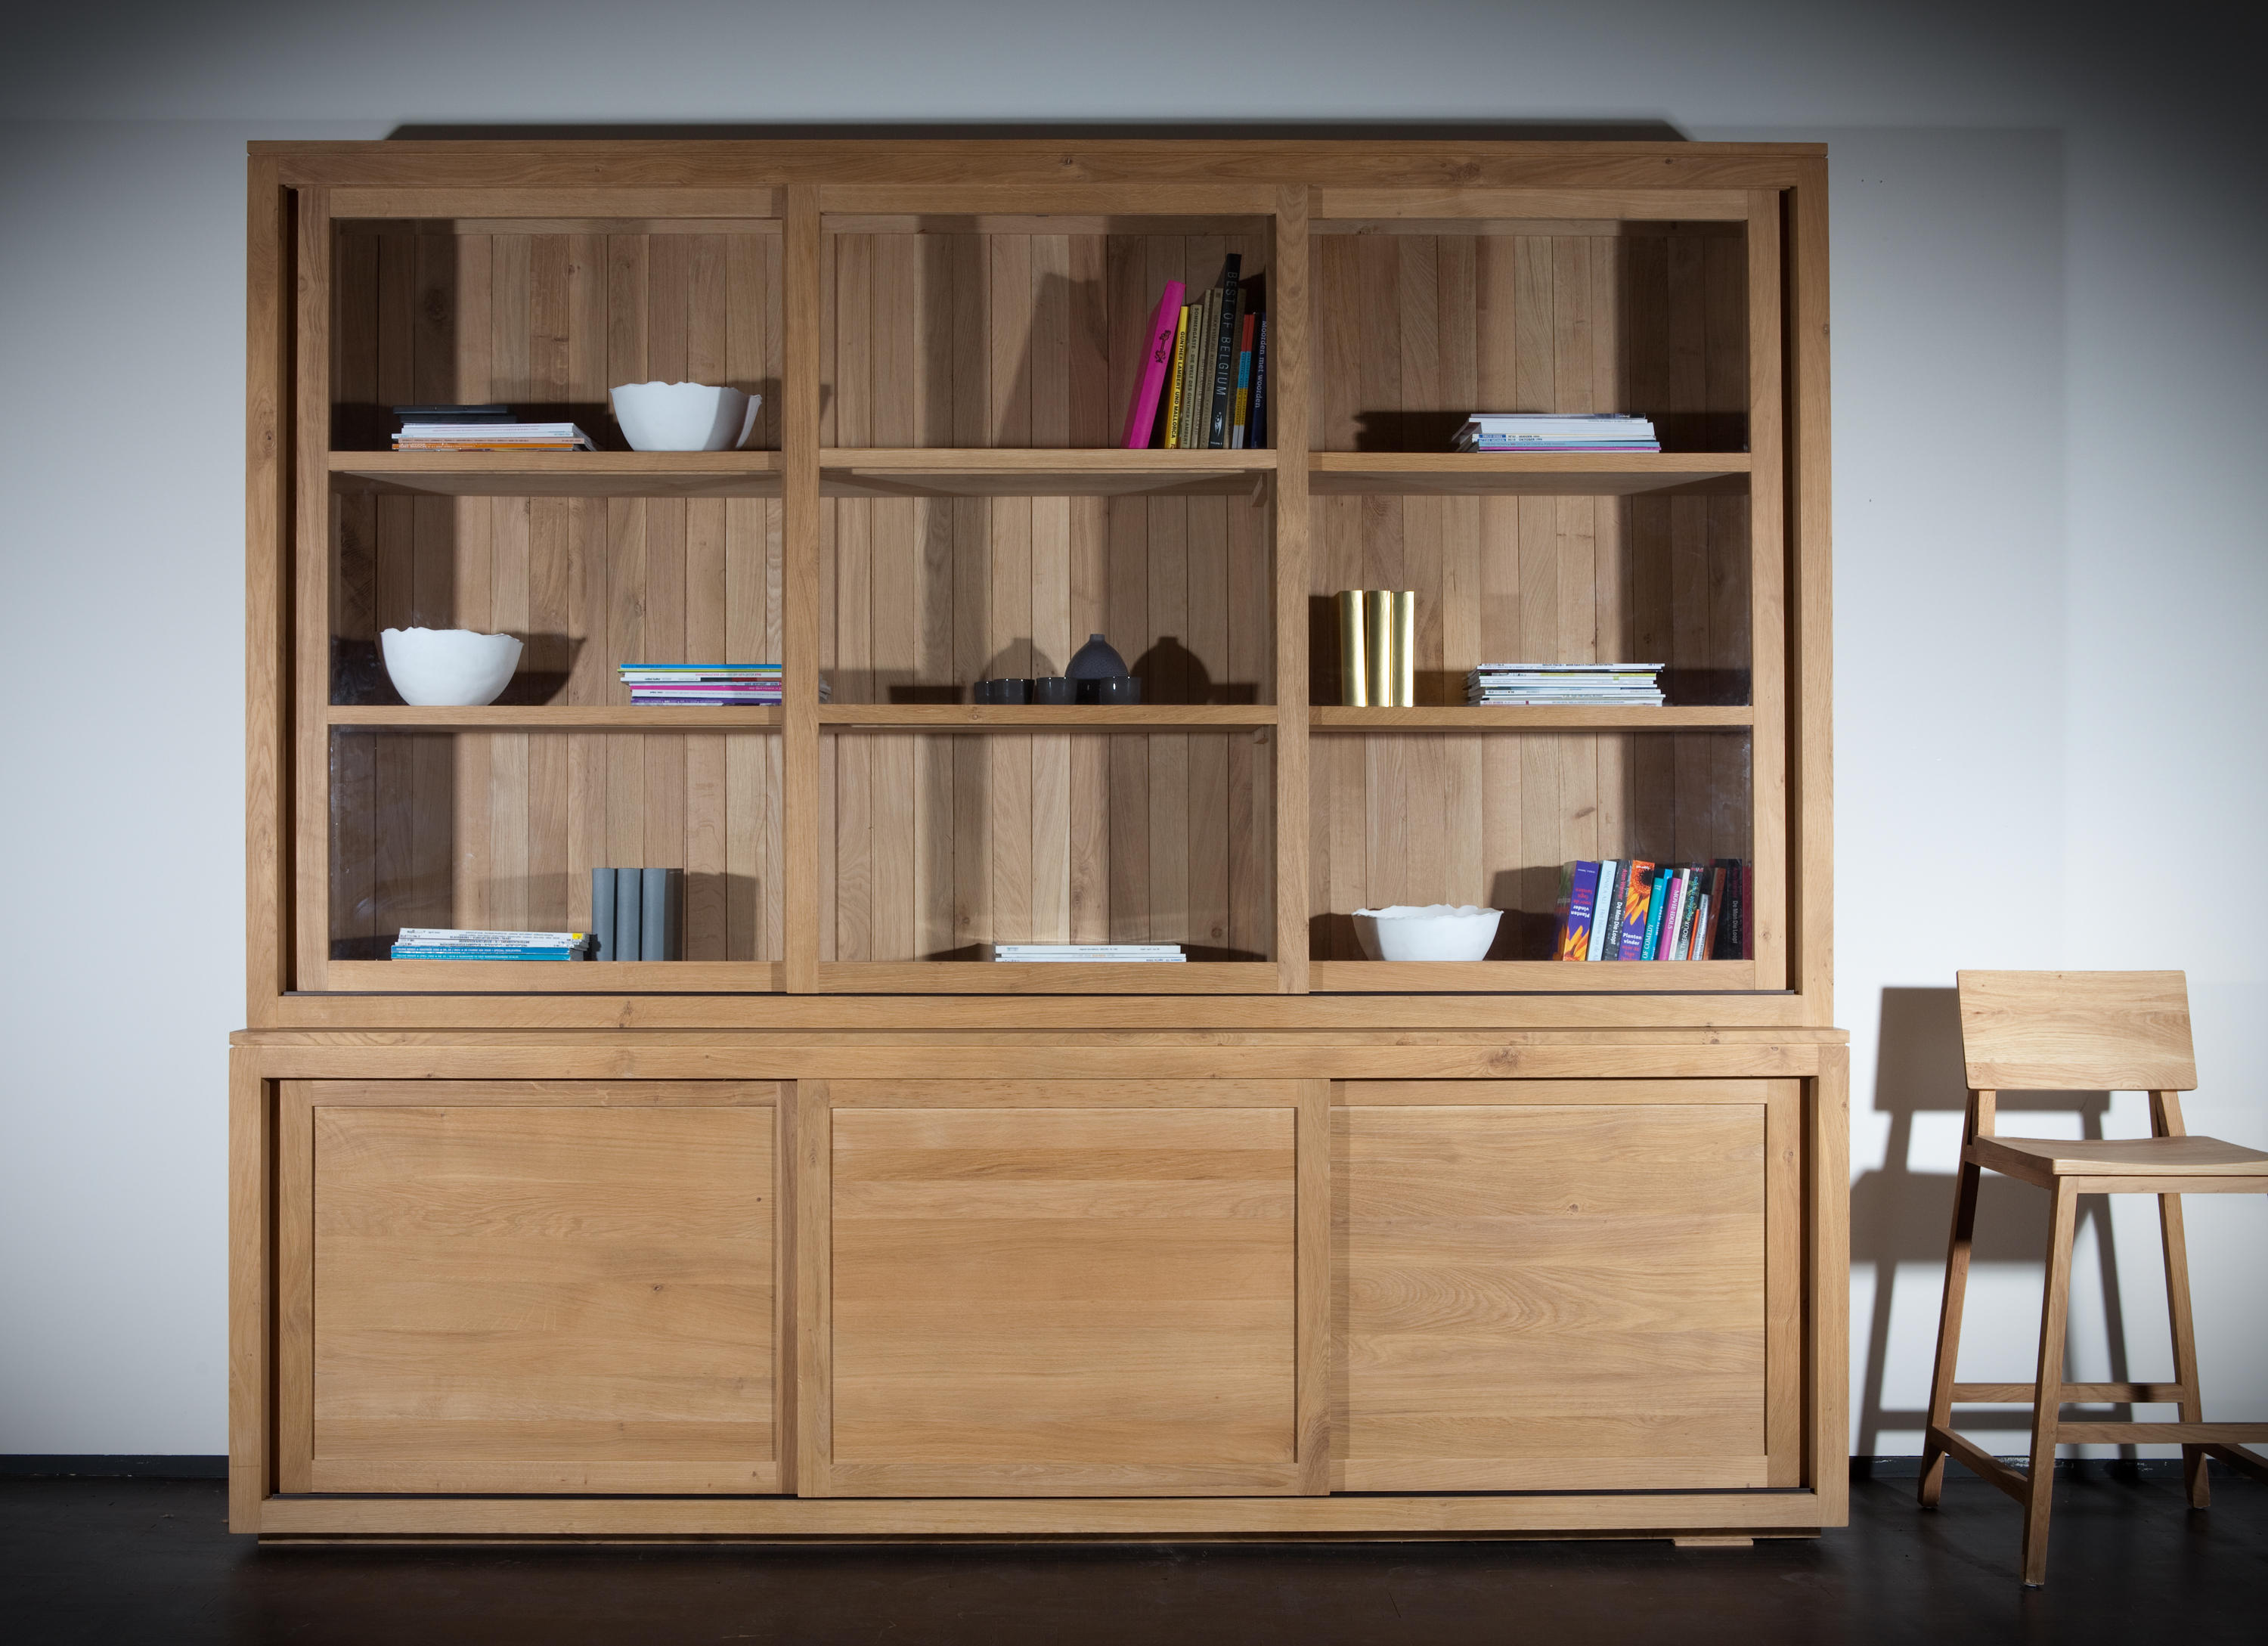 oak pure cupboard top display cabinets from ethnicraft. Black Bedroom Furniture Sets. Home Design Ideas